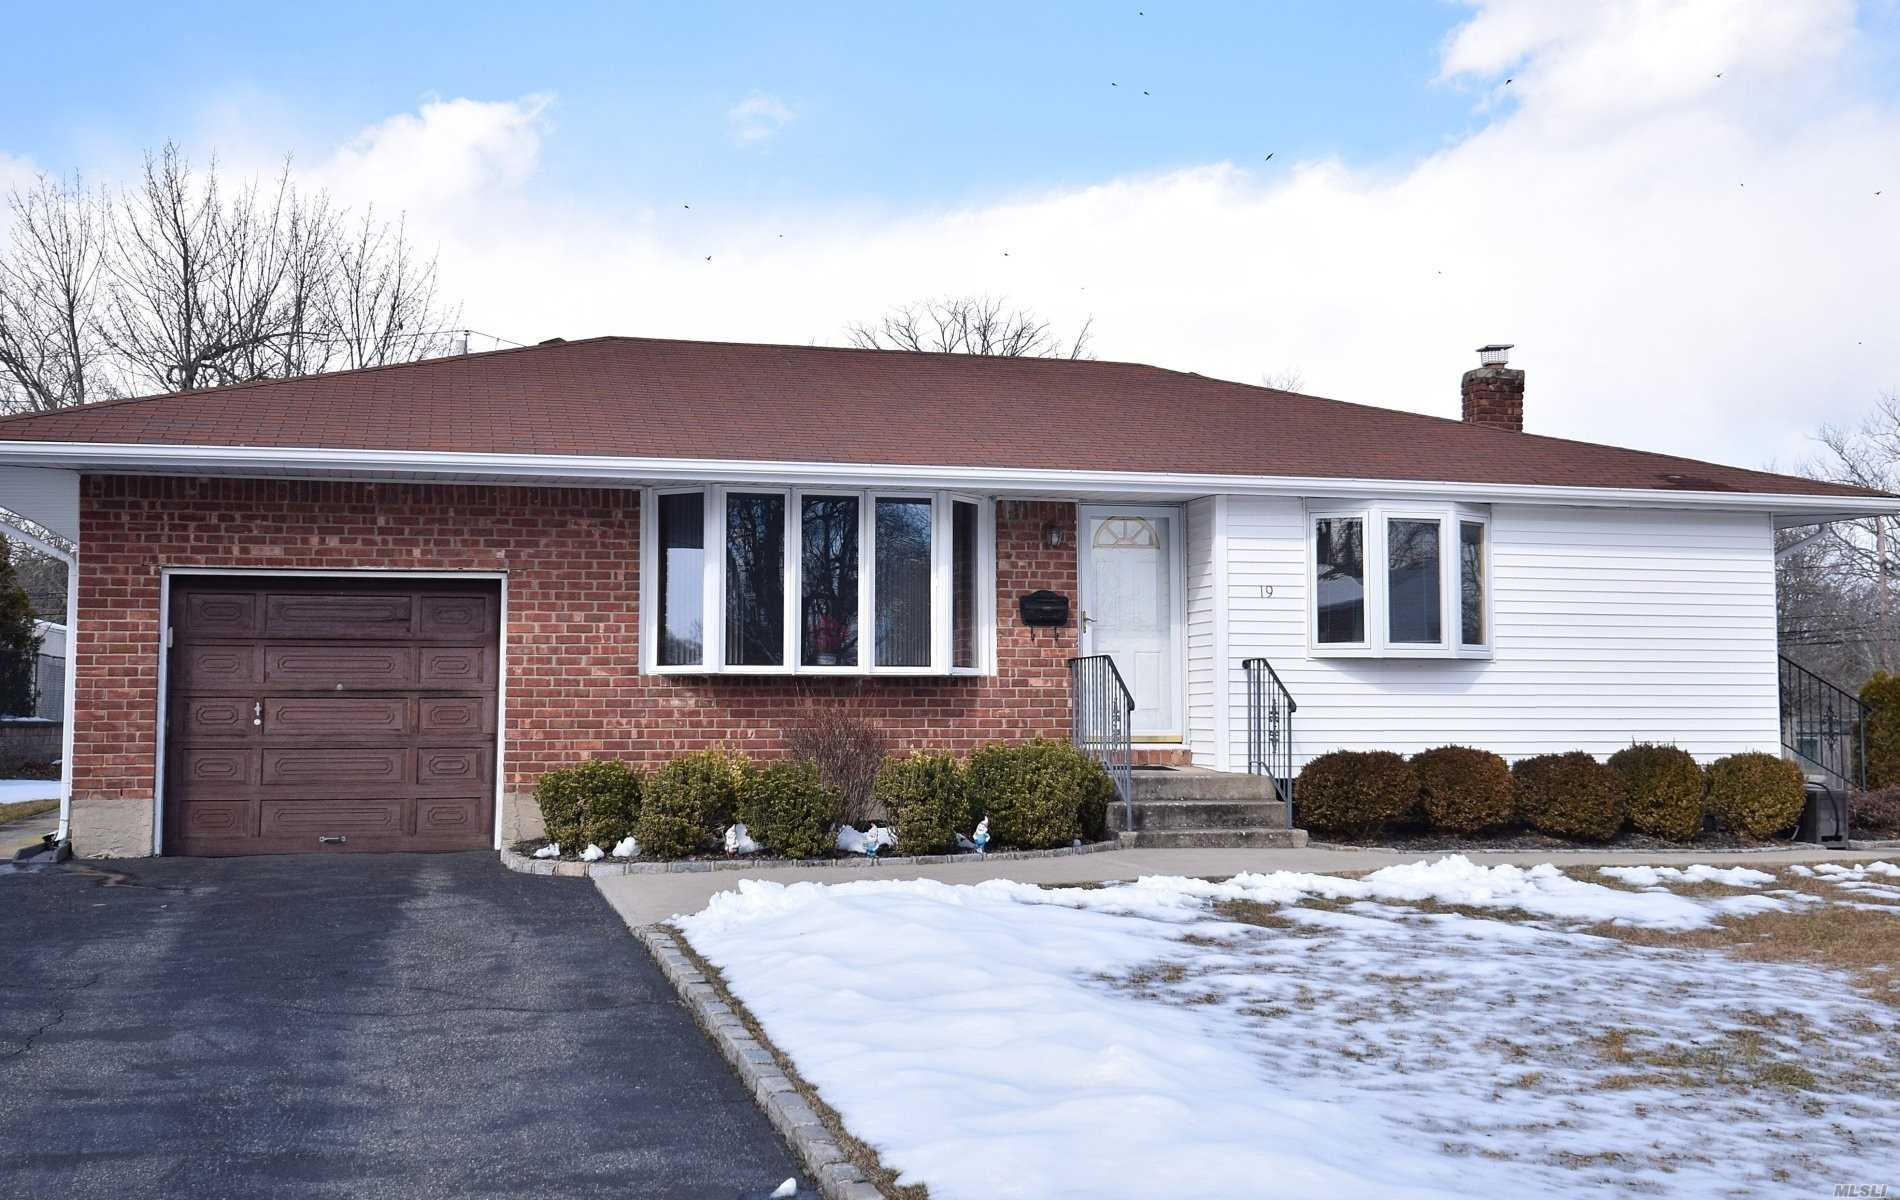 MINT EXPANDED RANCH/with CO/Office, 3 Bedrooms, 2 Baths, Hardwood Floors, Hi-Hats, Updated Kitchen/Sliders Patio, Updated Bay Window, Double Driveway/Belgium Block, Updated Hot Water, Full Bath with Separate Outside Side Entry in Basement. Workshop in Basement. Covered Patio, Sidewalks. Blue Ribbon Commack School District. Close to all Parkways and LIRR and shopping. Near Hoyt Farm.